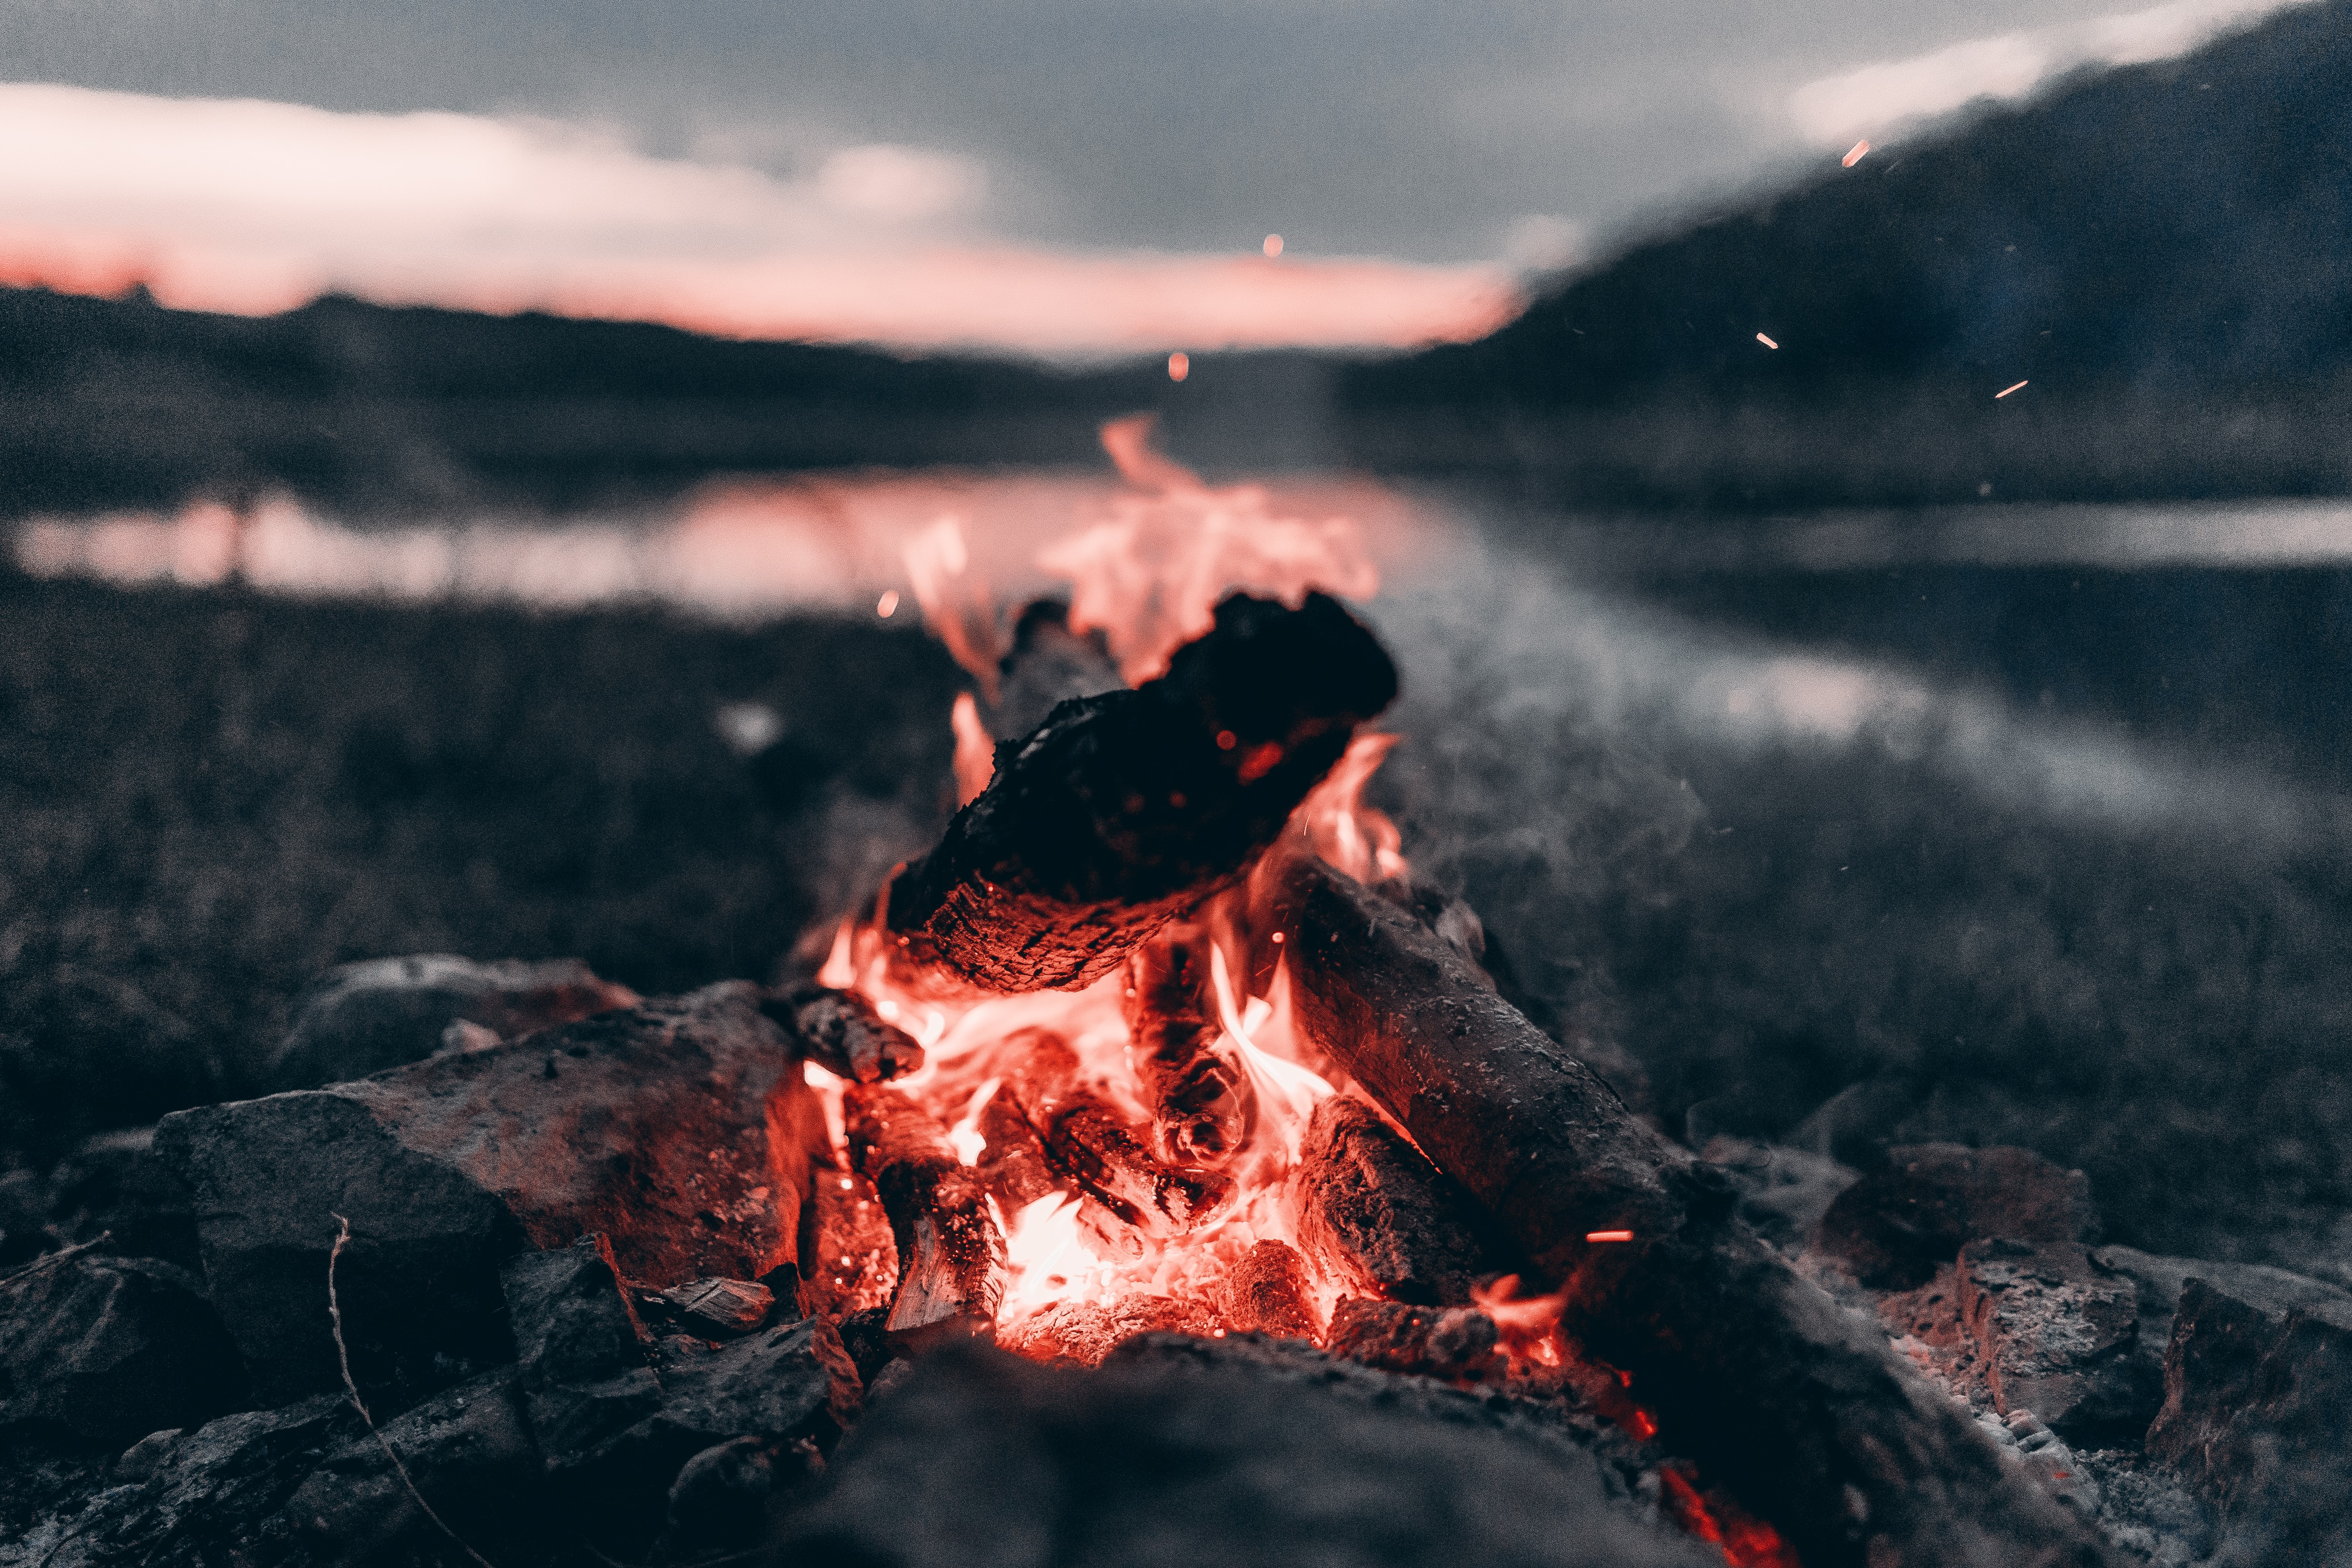 Best 20+ Campfire Pictures | Download Free Images on Unsplash